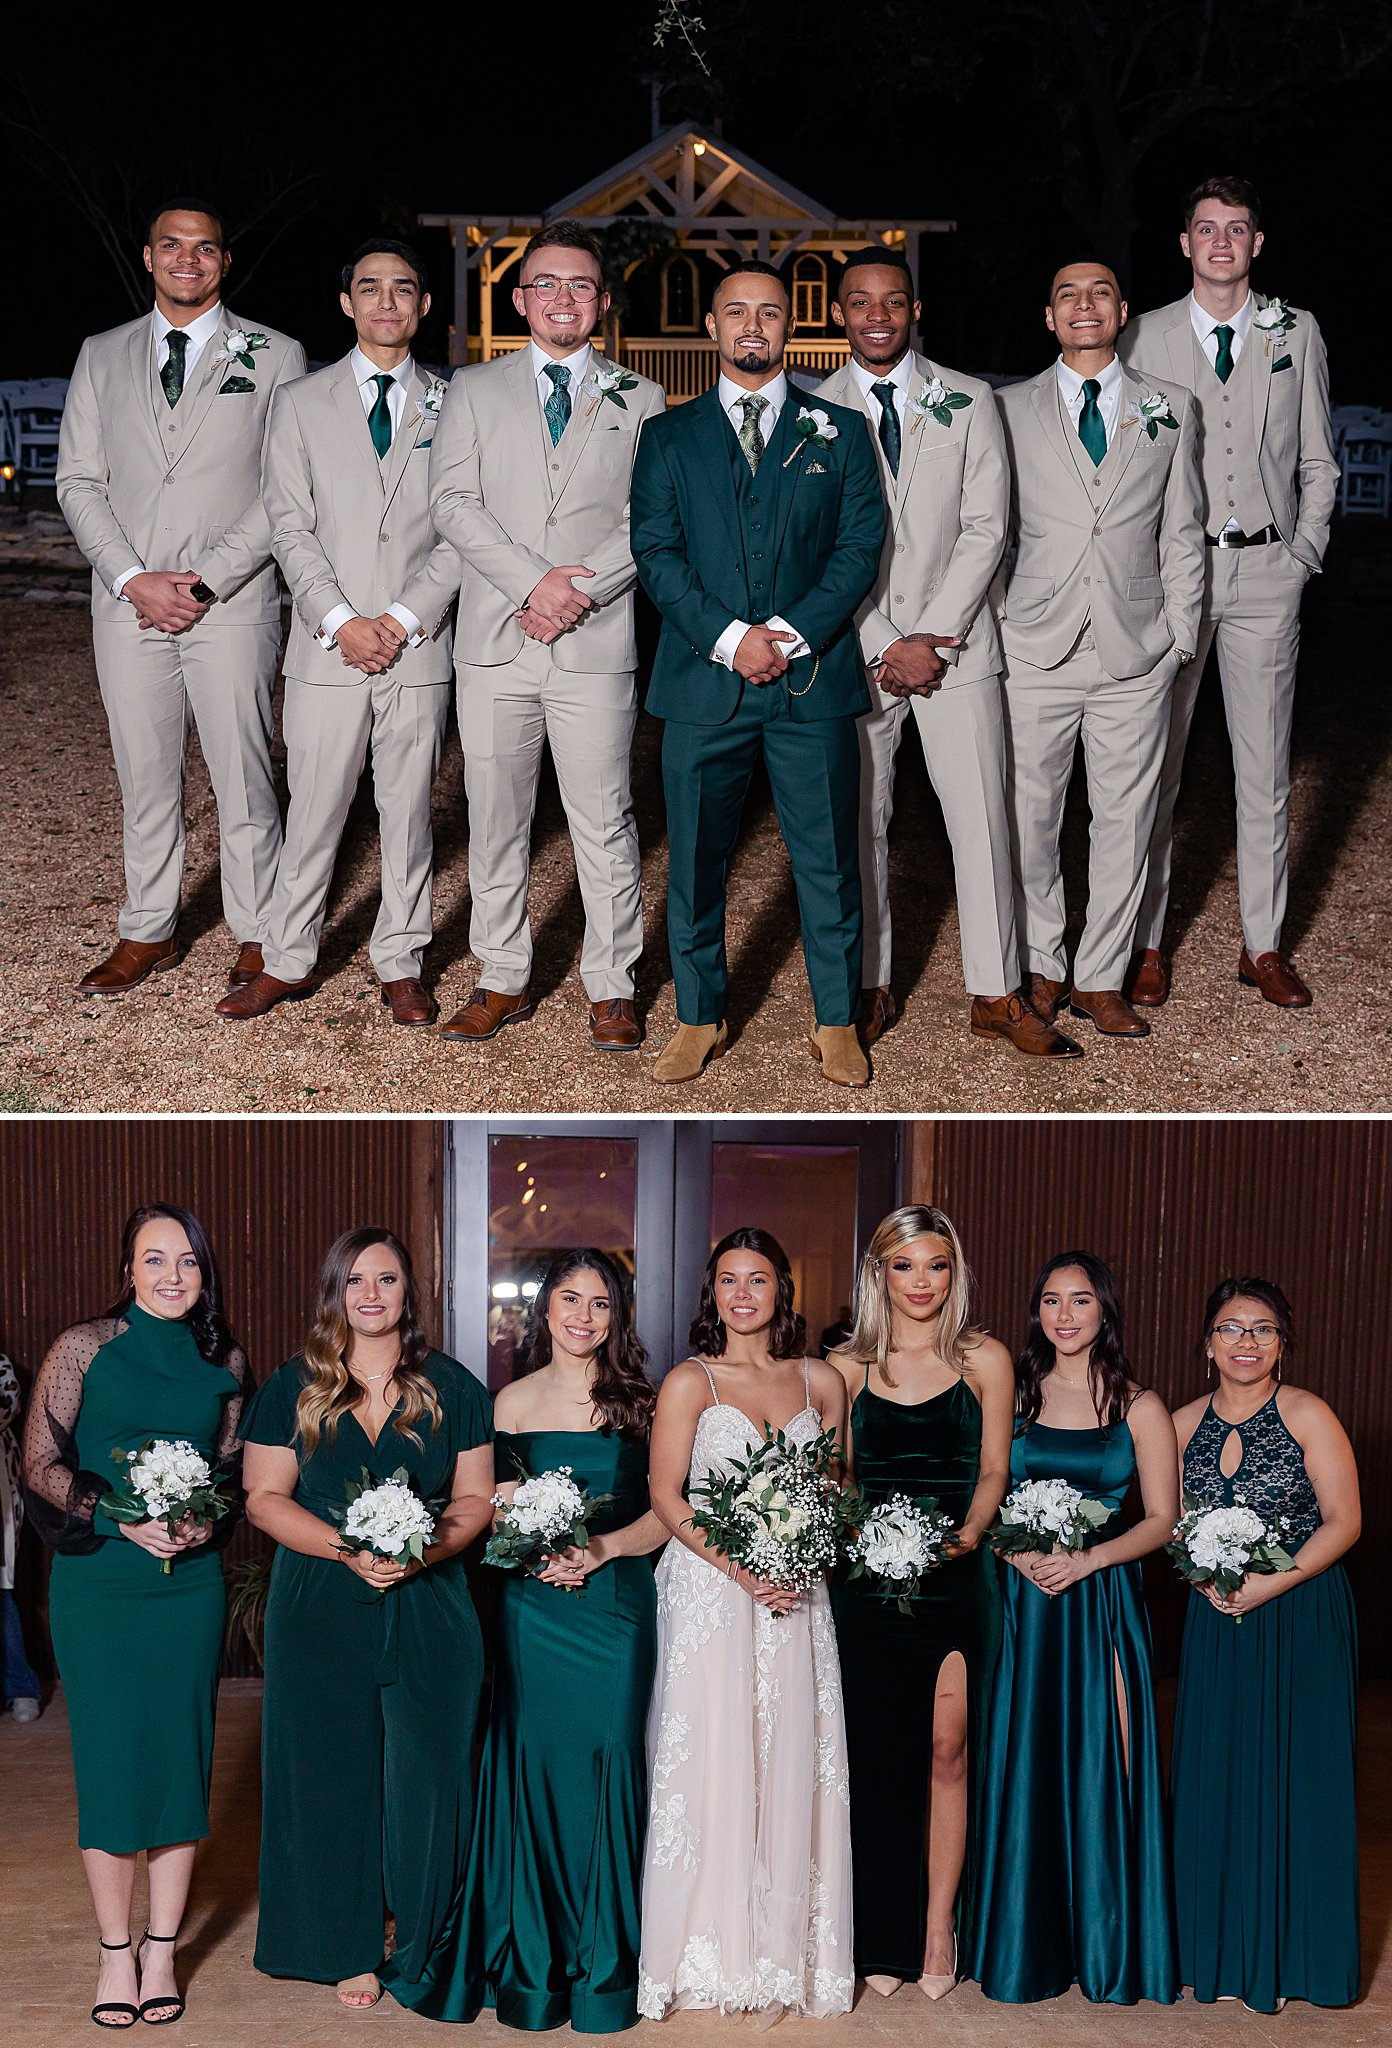 Carly-Barton-Photography-Texas-Wedding-Photographer-Western-Sky-Wedding-Event-Venue-Emerald-Green-Theme_0060.jpg